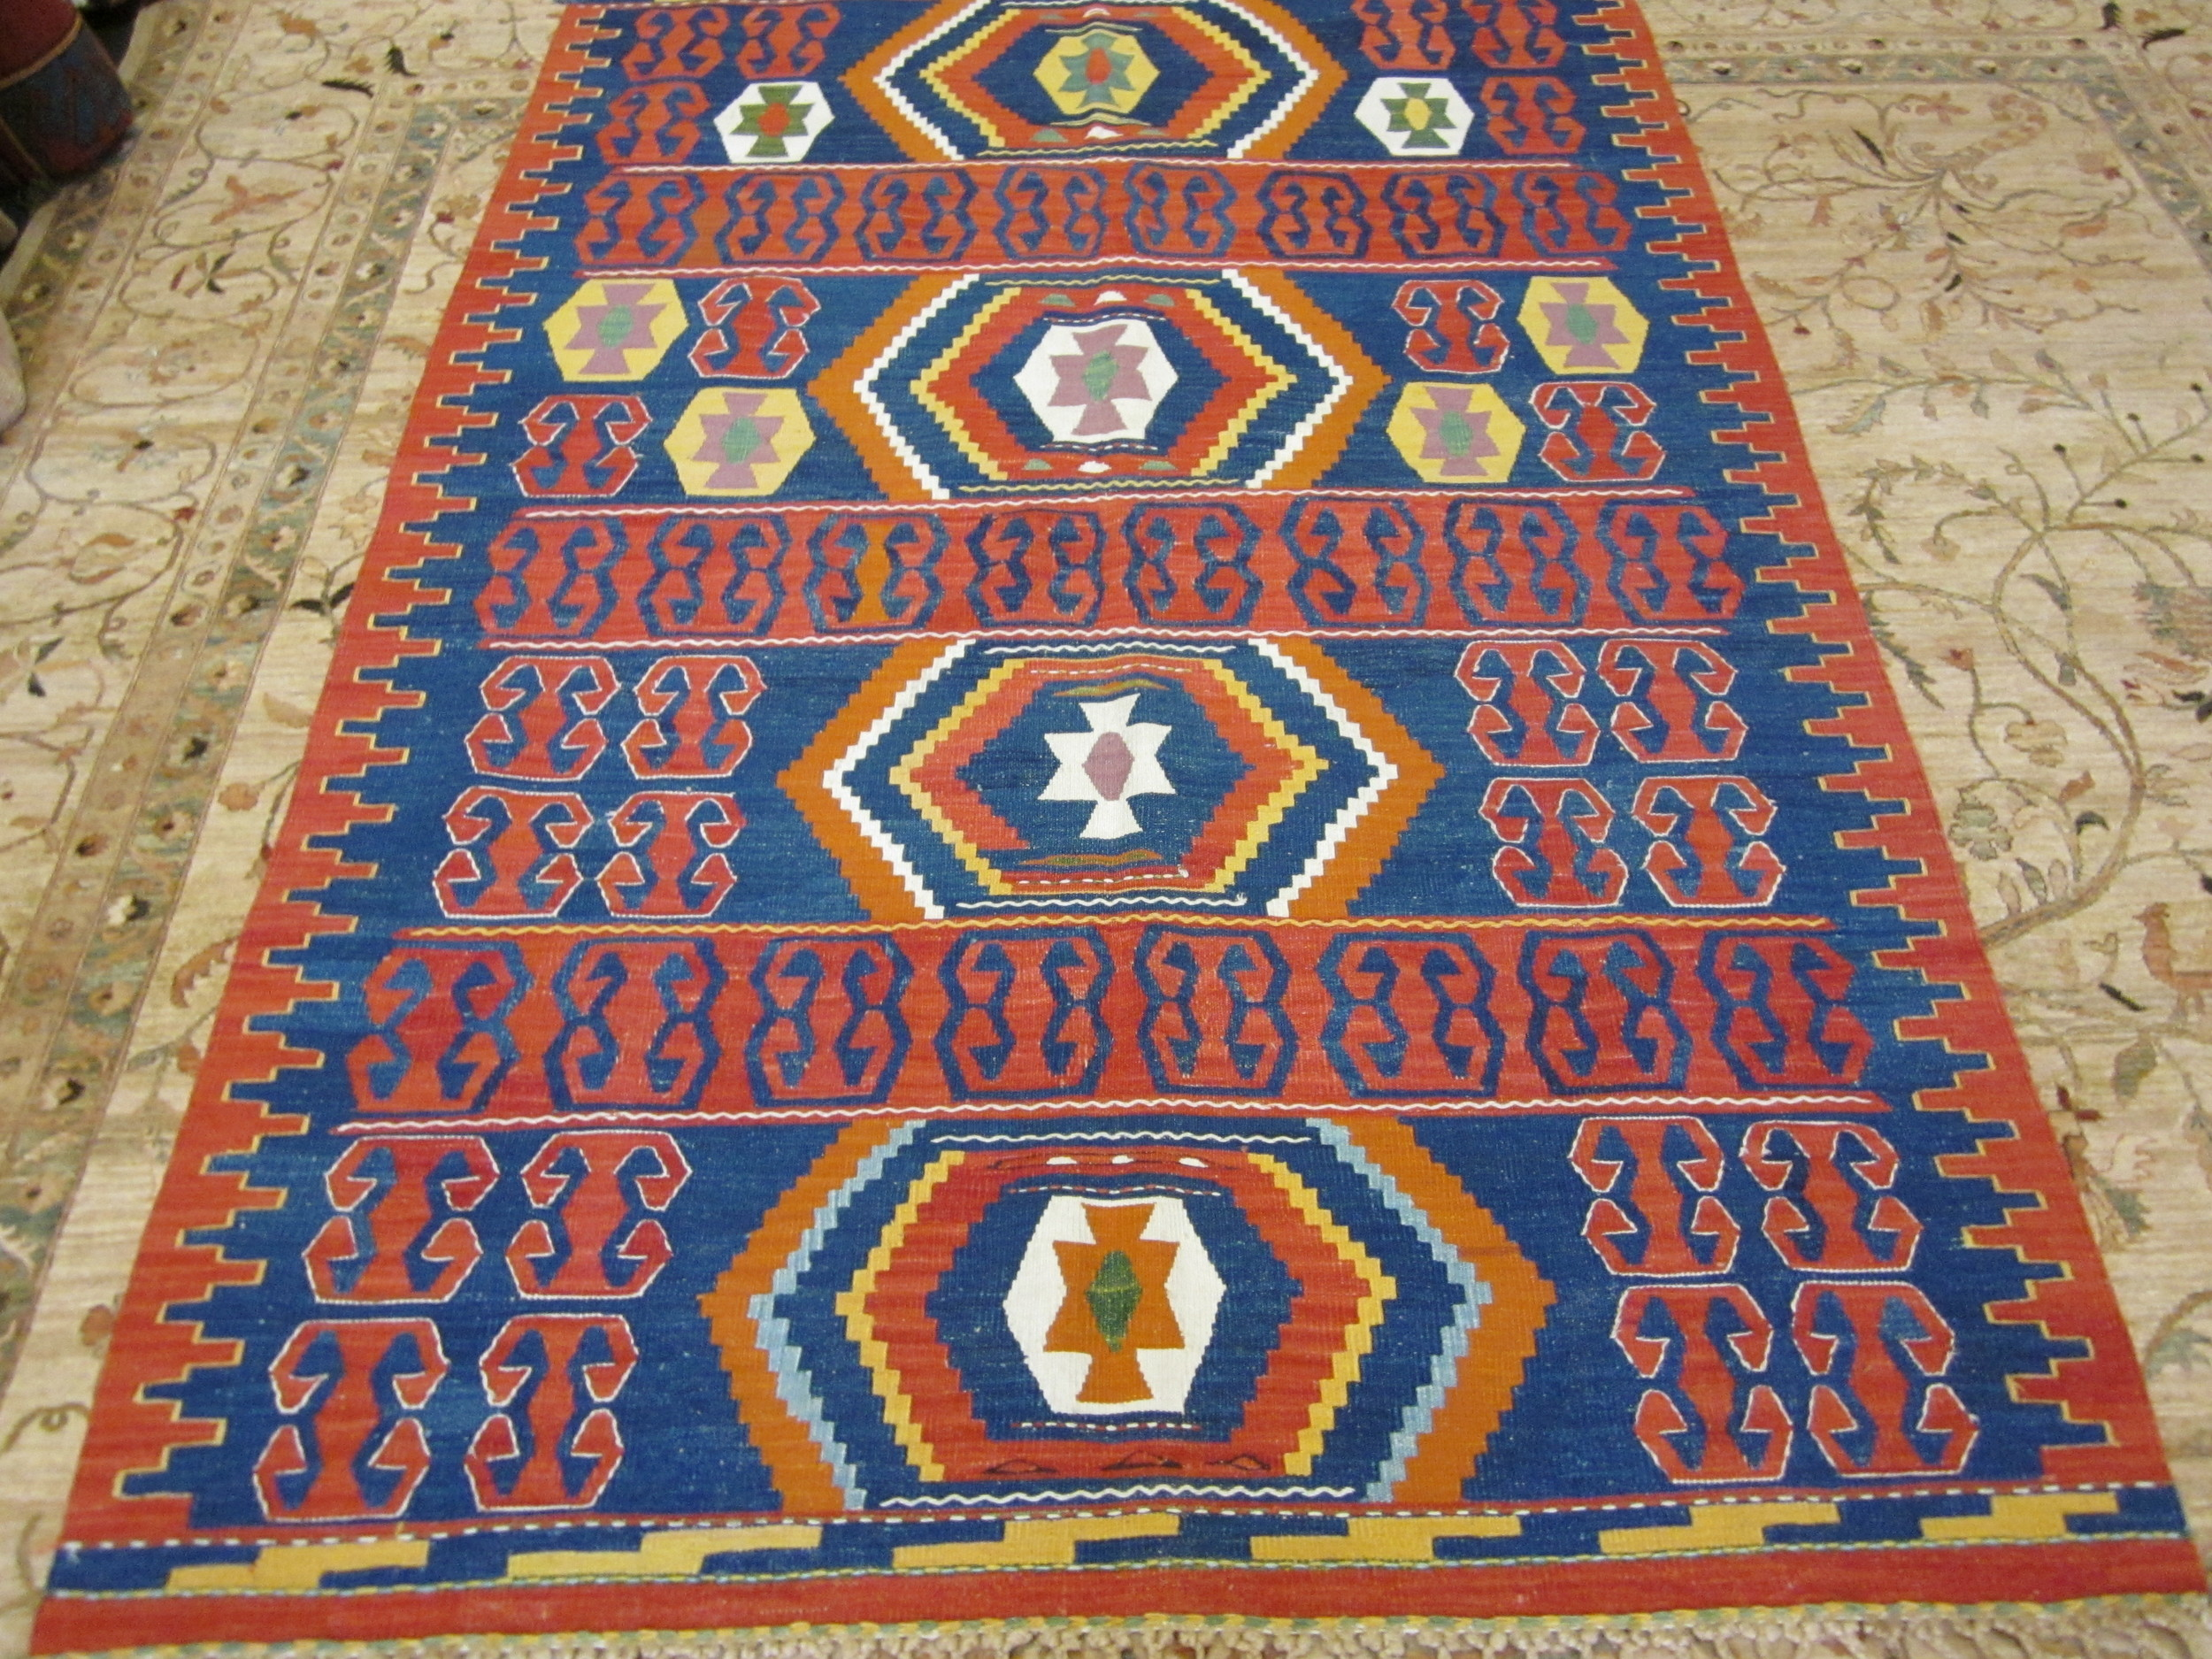 "#13) 4'4"" x 6'5"" Turkish kilim. Bright and cheerful with beautiful knotting on the fringe."